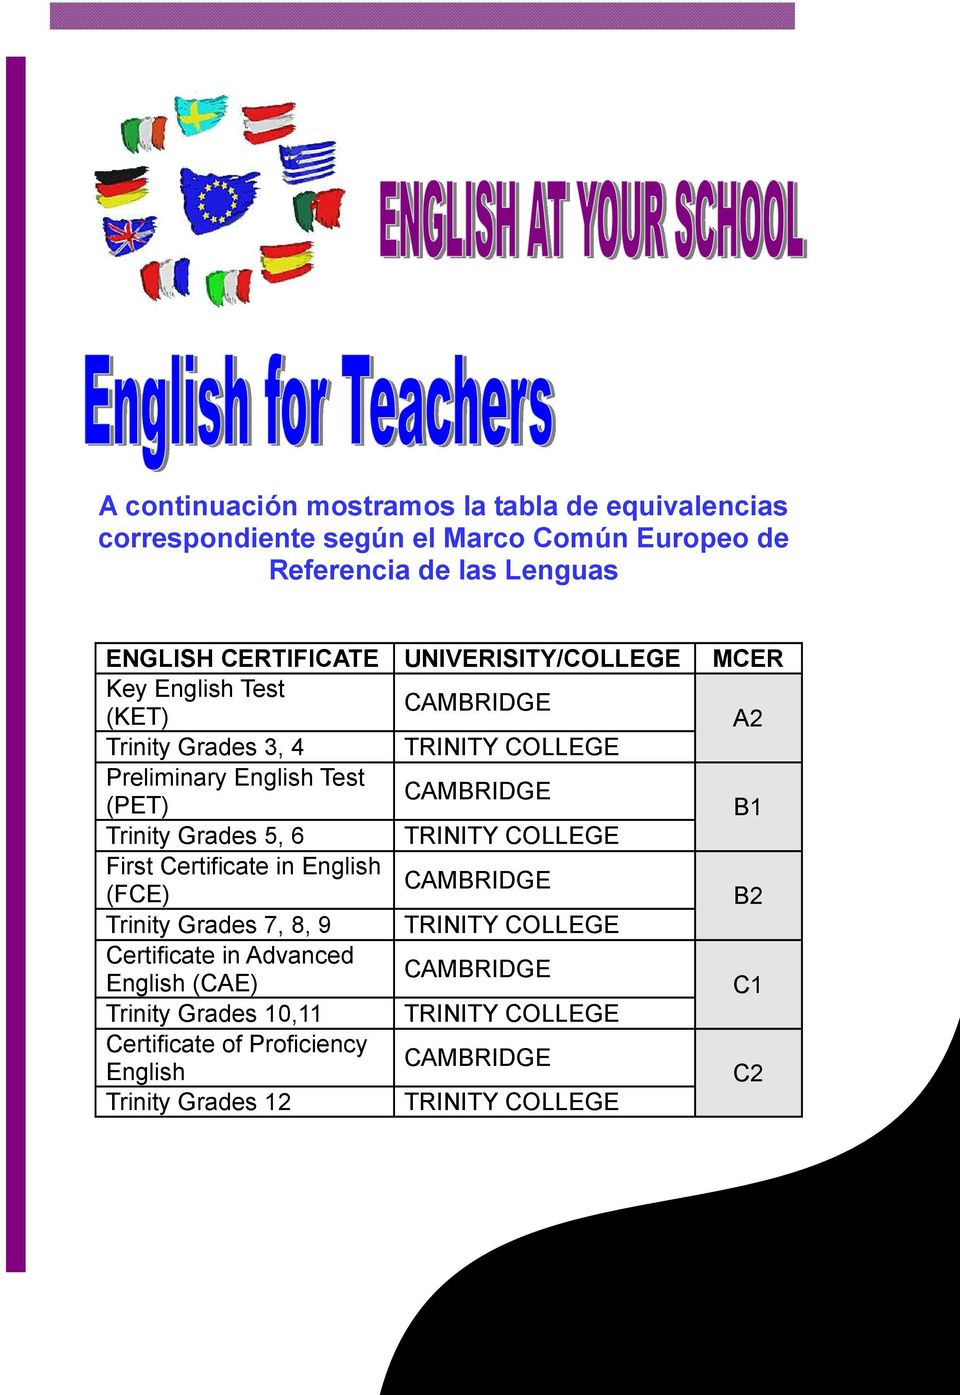 (PET) B1 Trinity Grades 5, 6 TRINITY COLLEGE First Certificate in English (FCE) B2 Trinity Grades 7, 8, 9 TRINITY COLLEGE